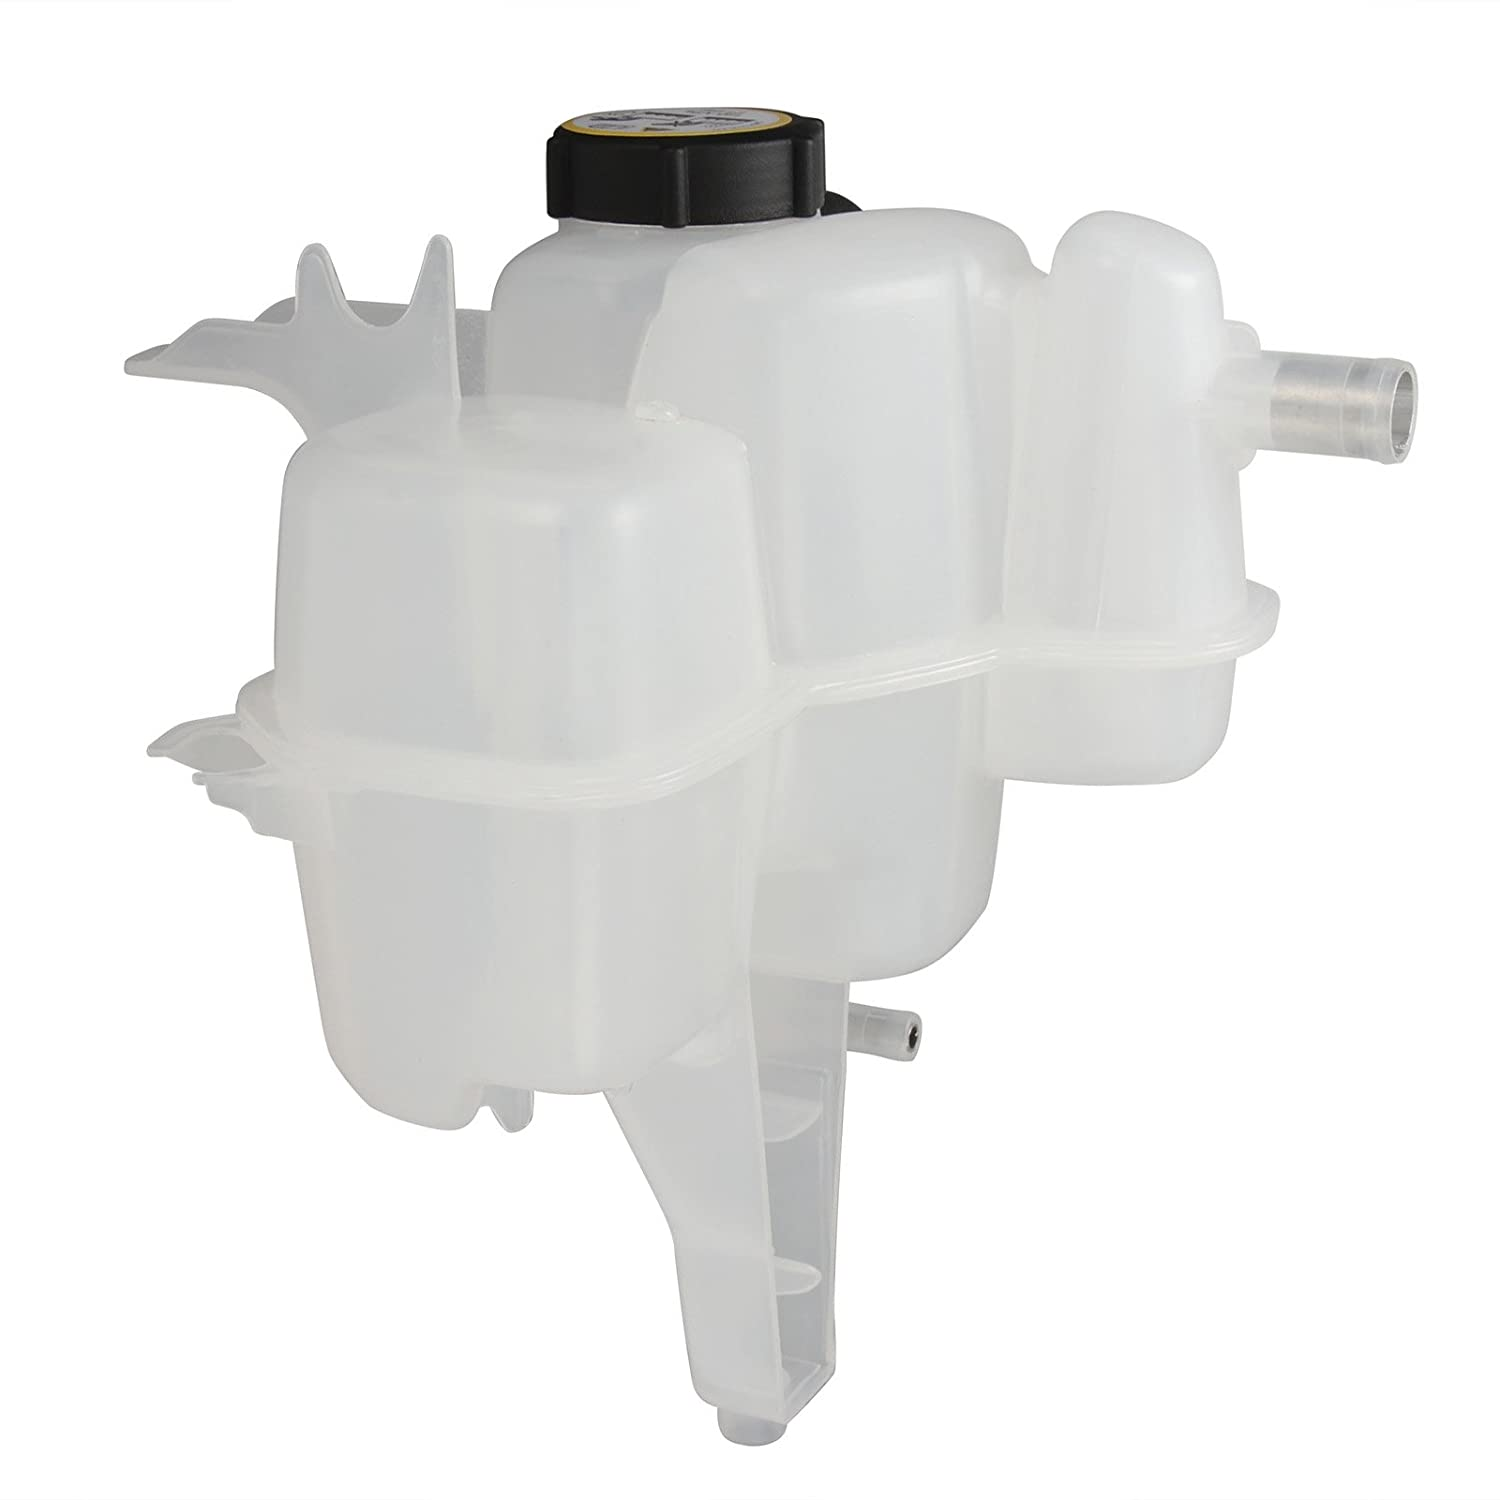 Twilight Garage Radiator Coolant Overflow Expansion Bottle Tank Reservoir w//Cap BL848A080AA FO3014107 for Ford Escape Mazda Tribute Mariner